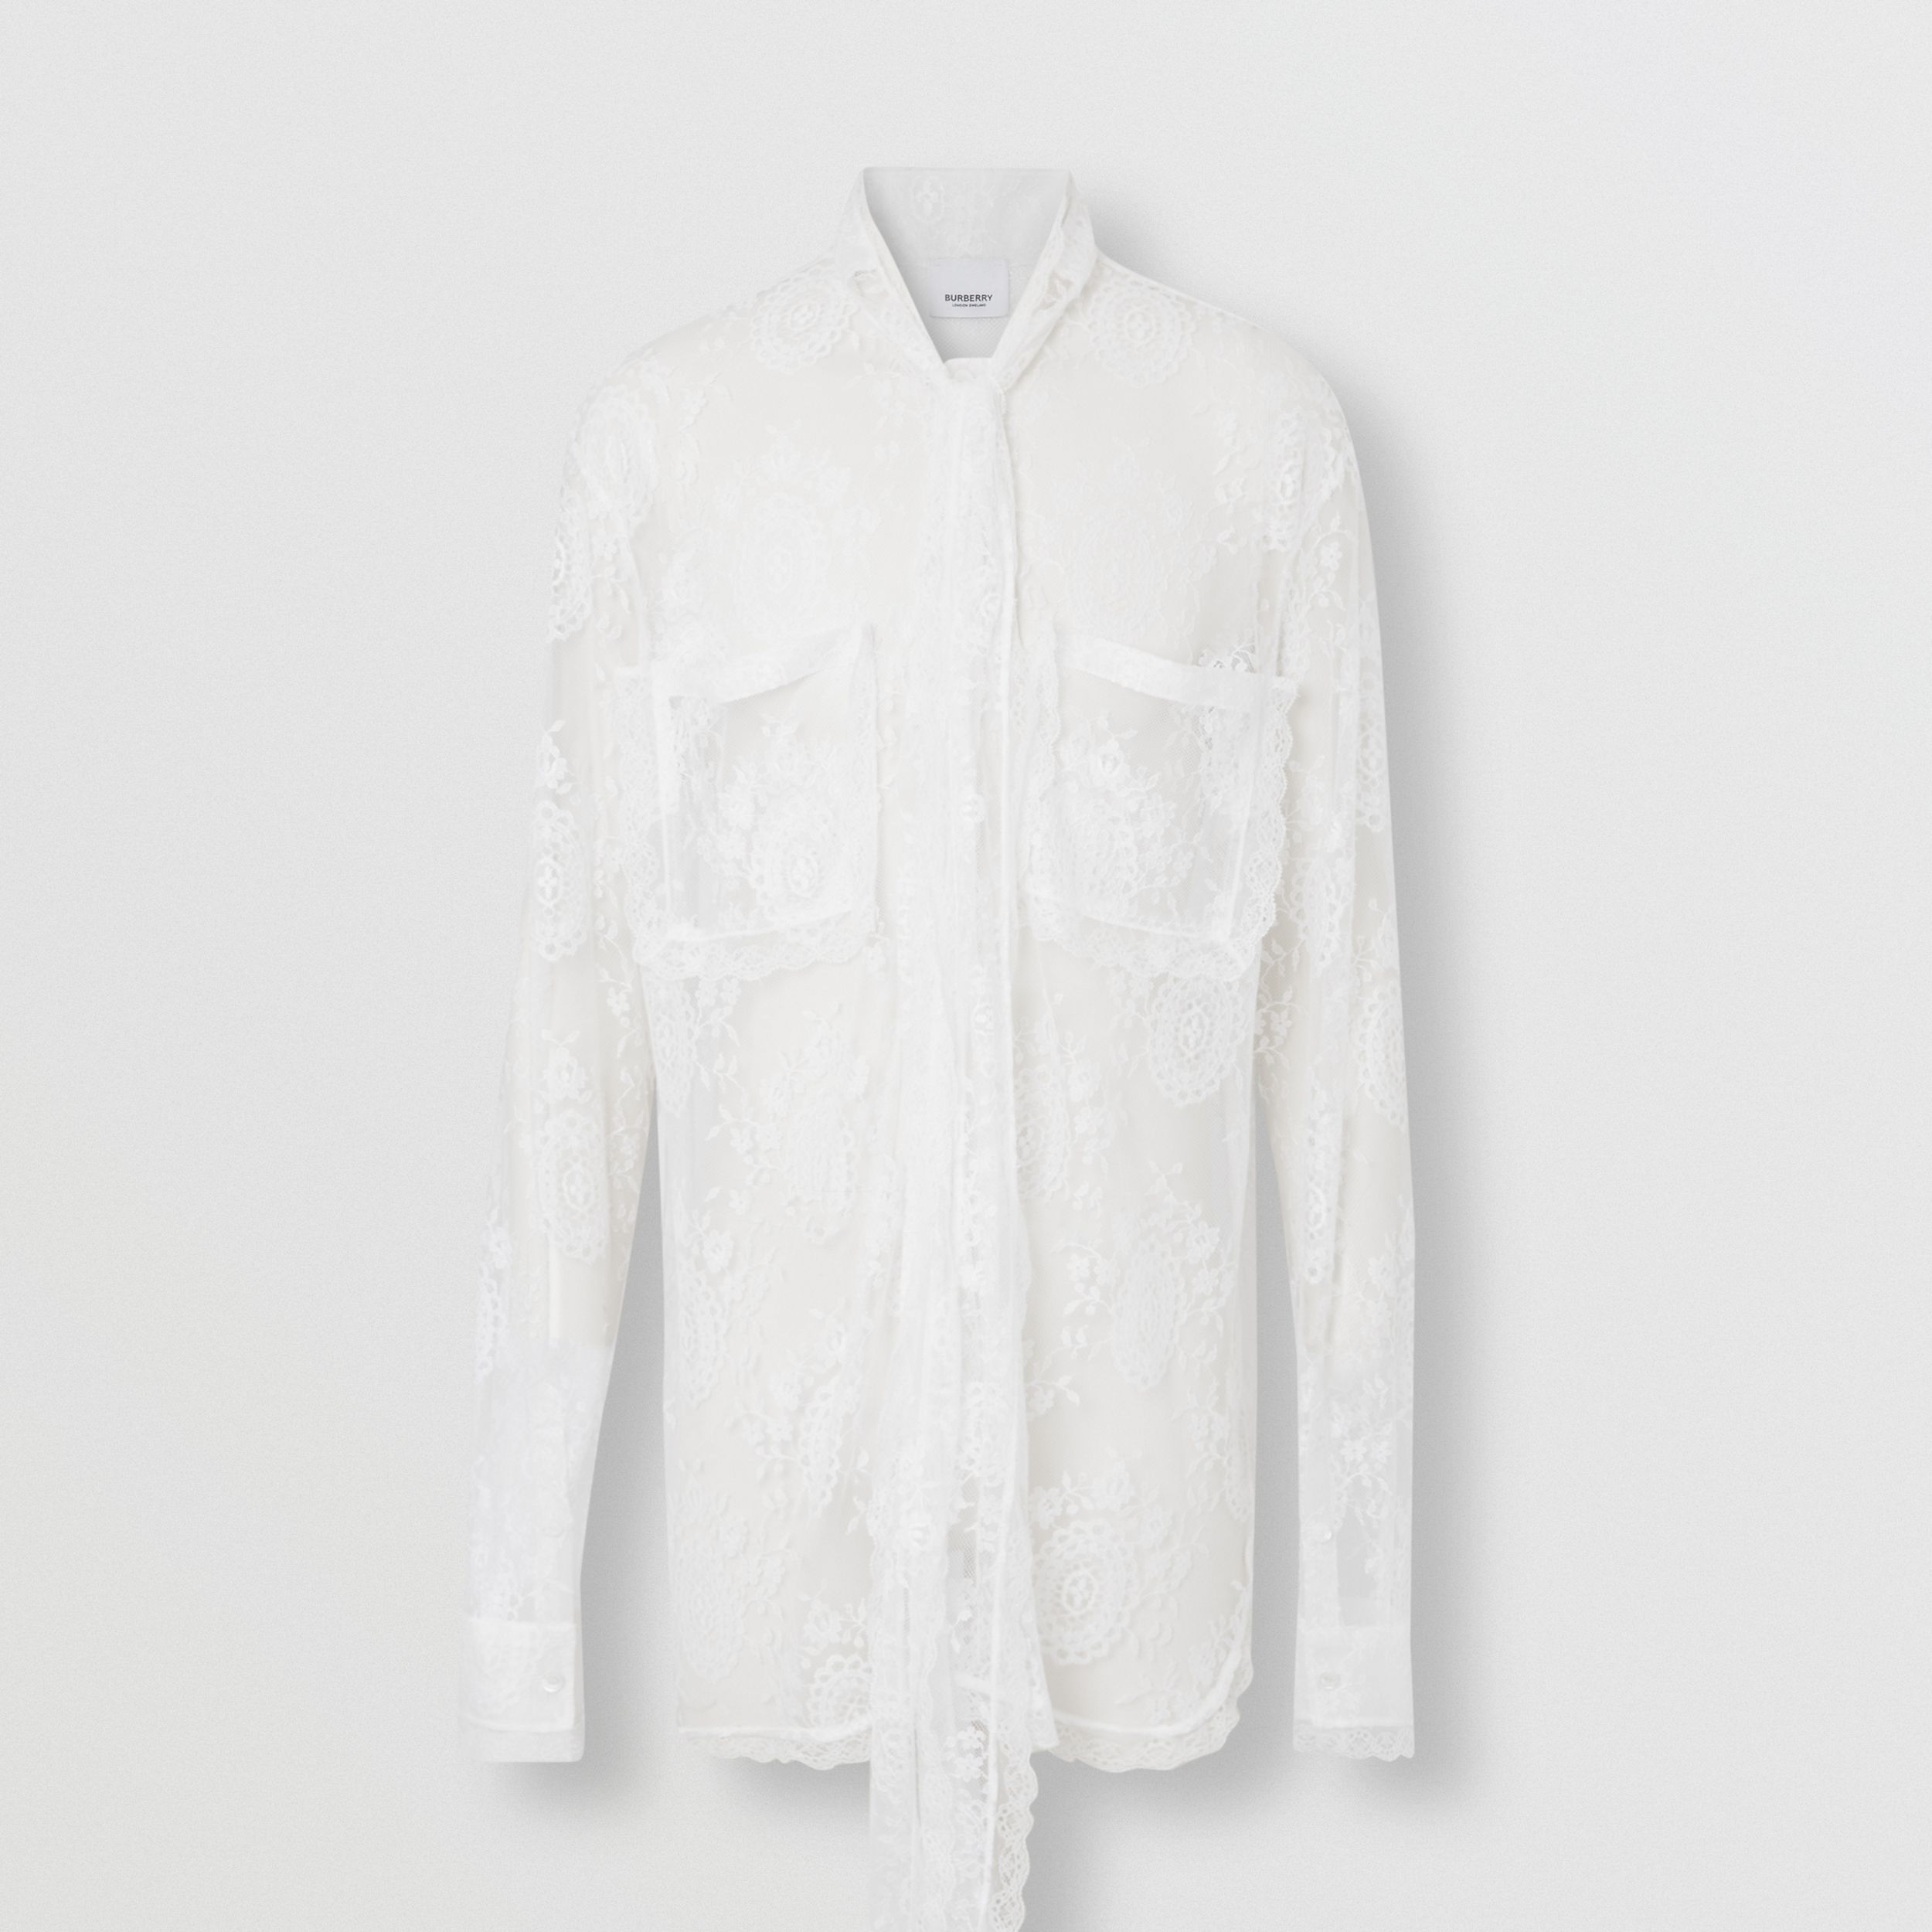 Chantilly Lace Oversized Tie-neck Shirt in Optic White | Burberry - 4